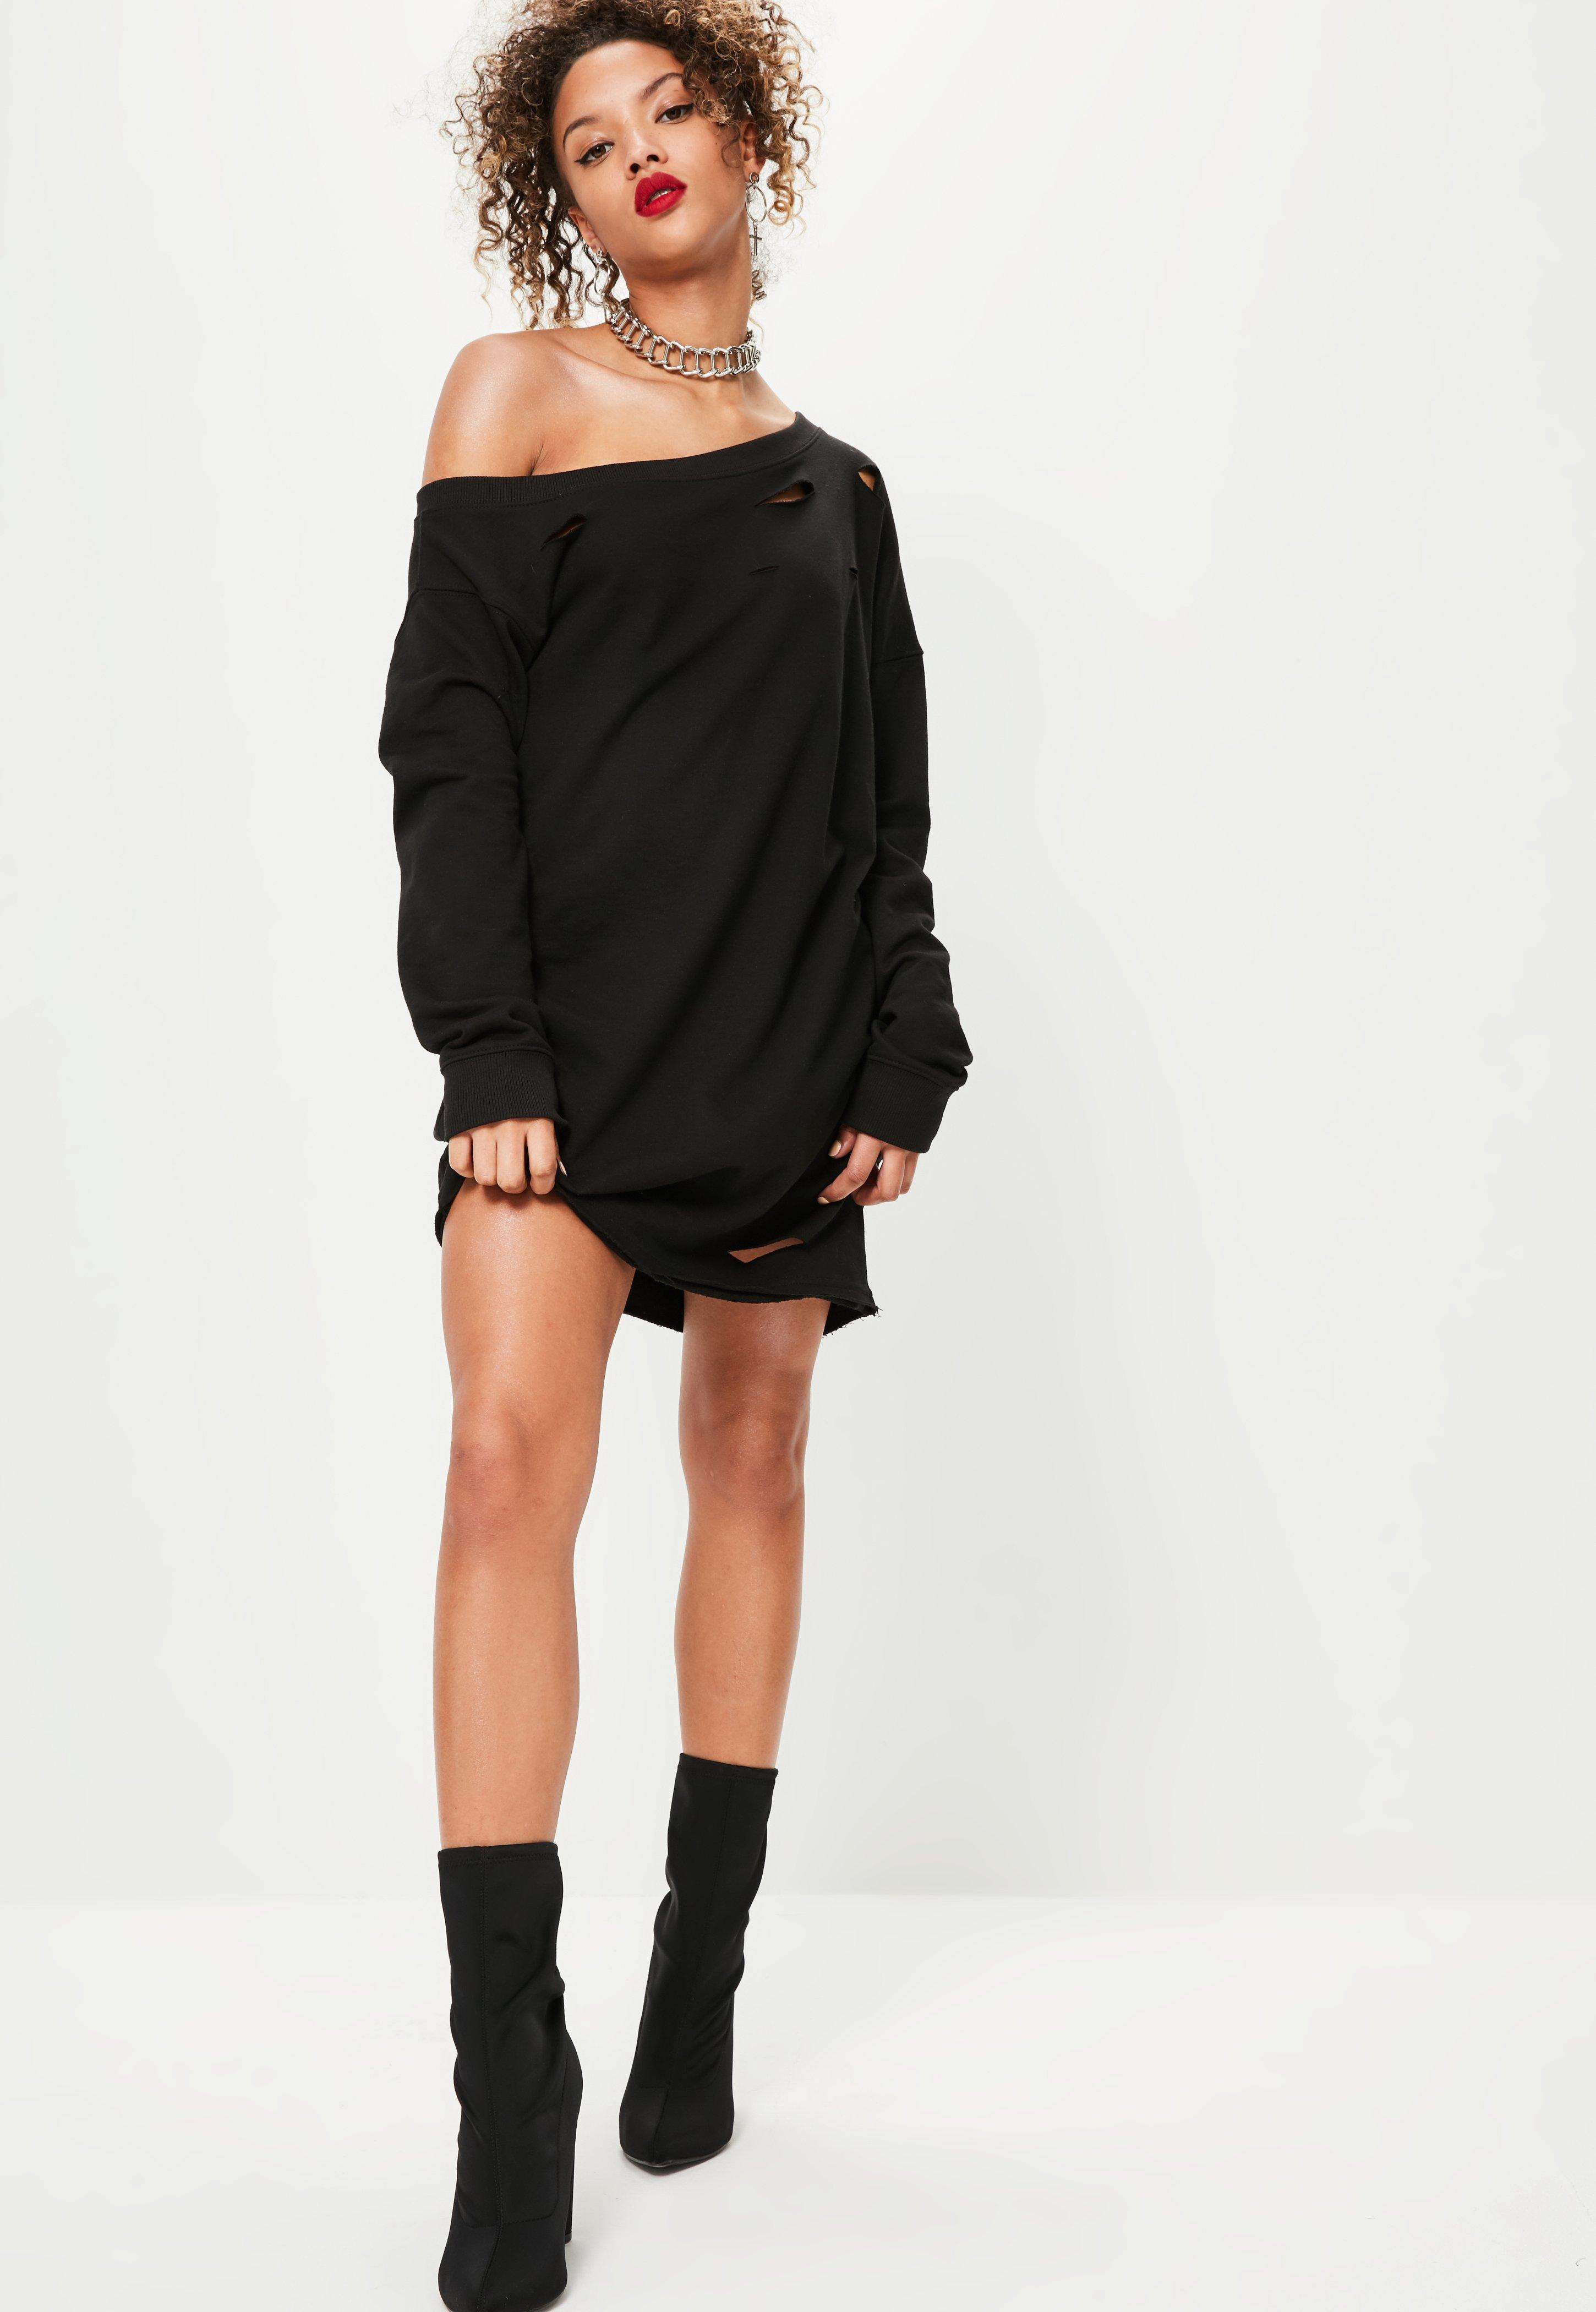 978adf3b1 Lyst - Missguided Ripped Oversized Sweater Dress Black in Black